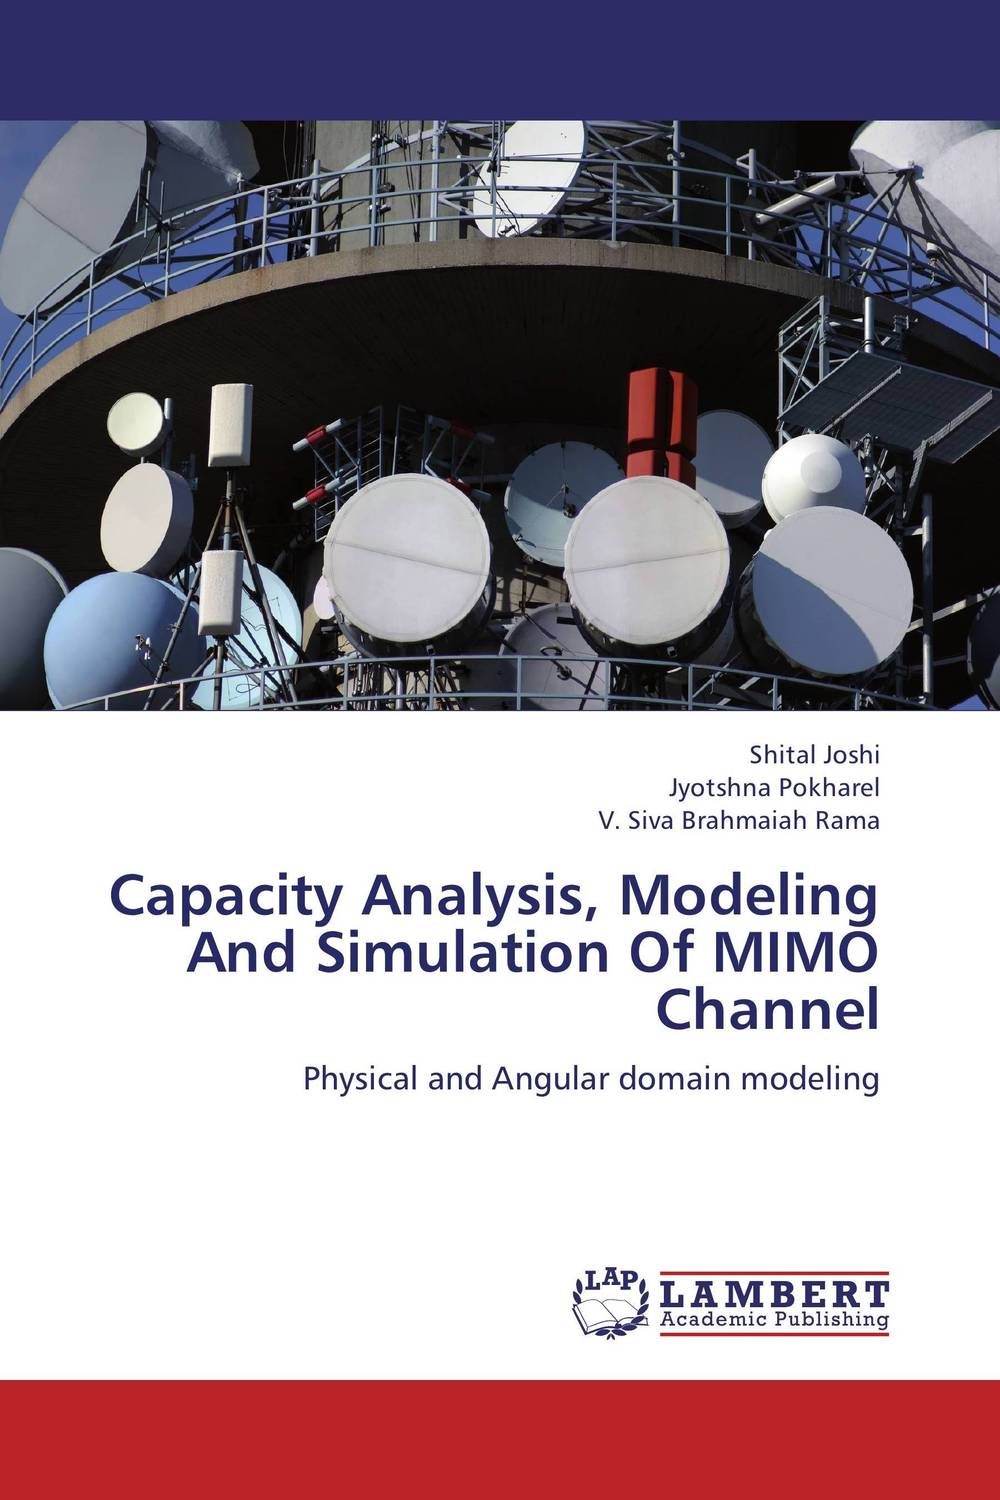 Capacity Analysis, Modeling And Simulation Of MIMO Channel цена